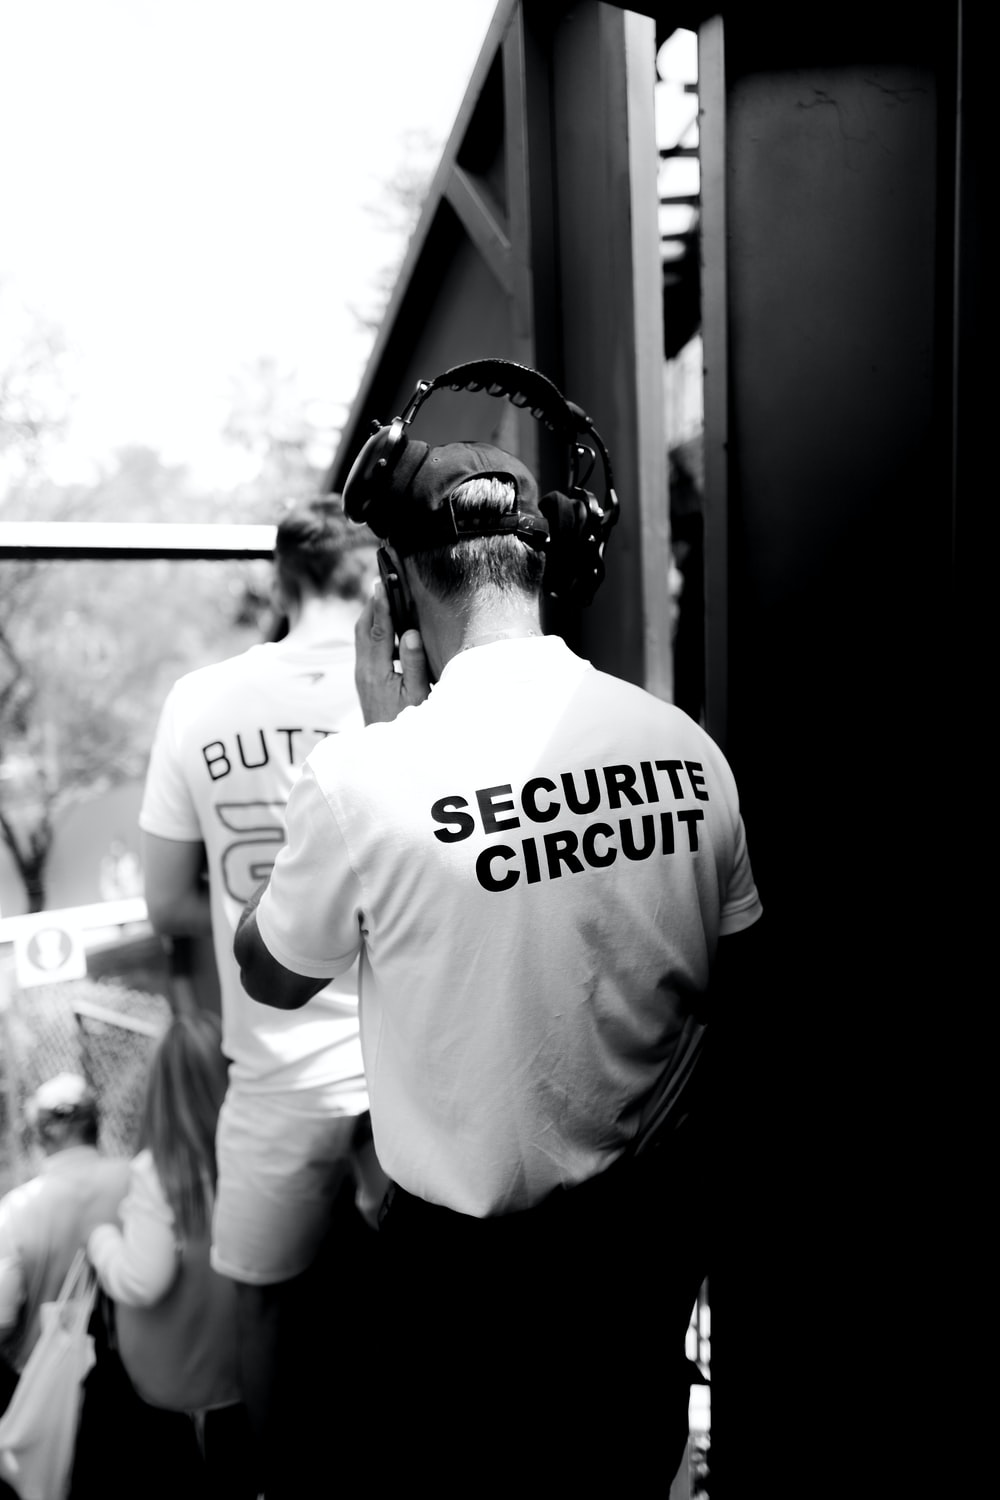 security personnel with headphones grayscale photo